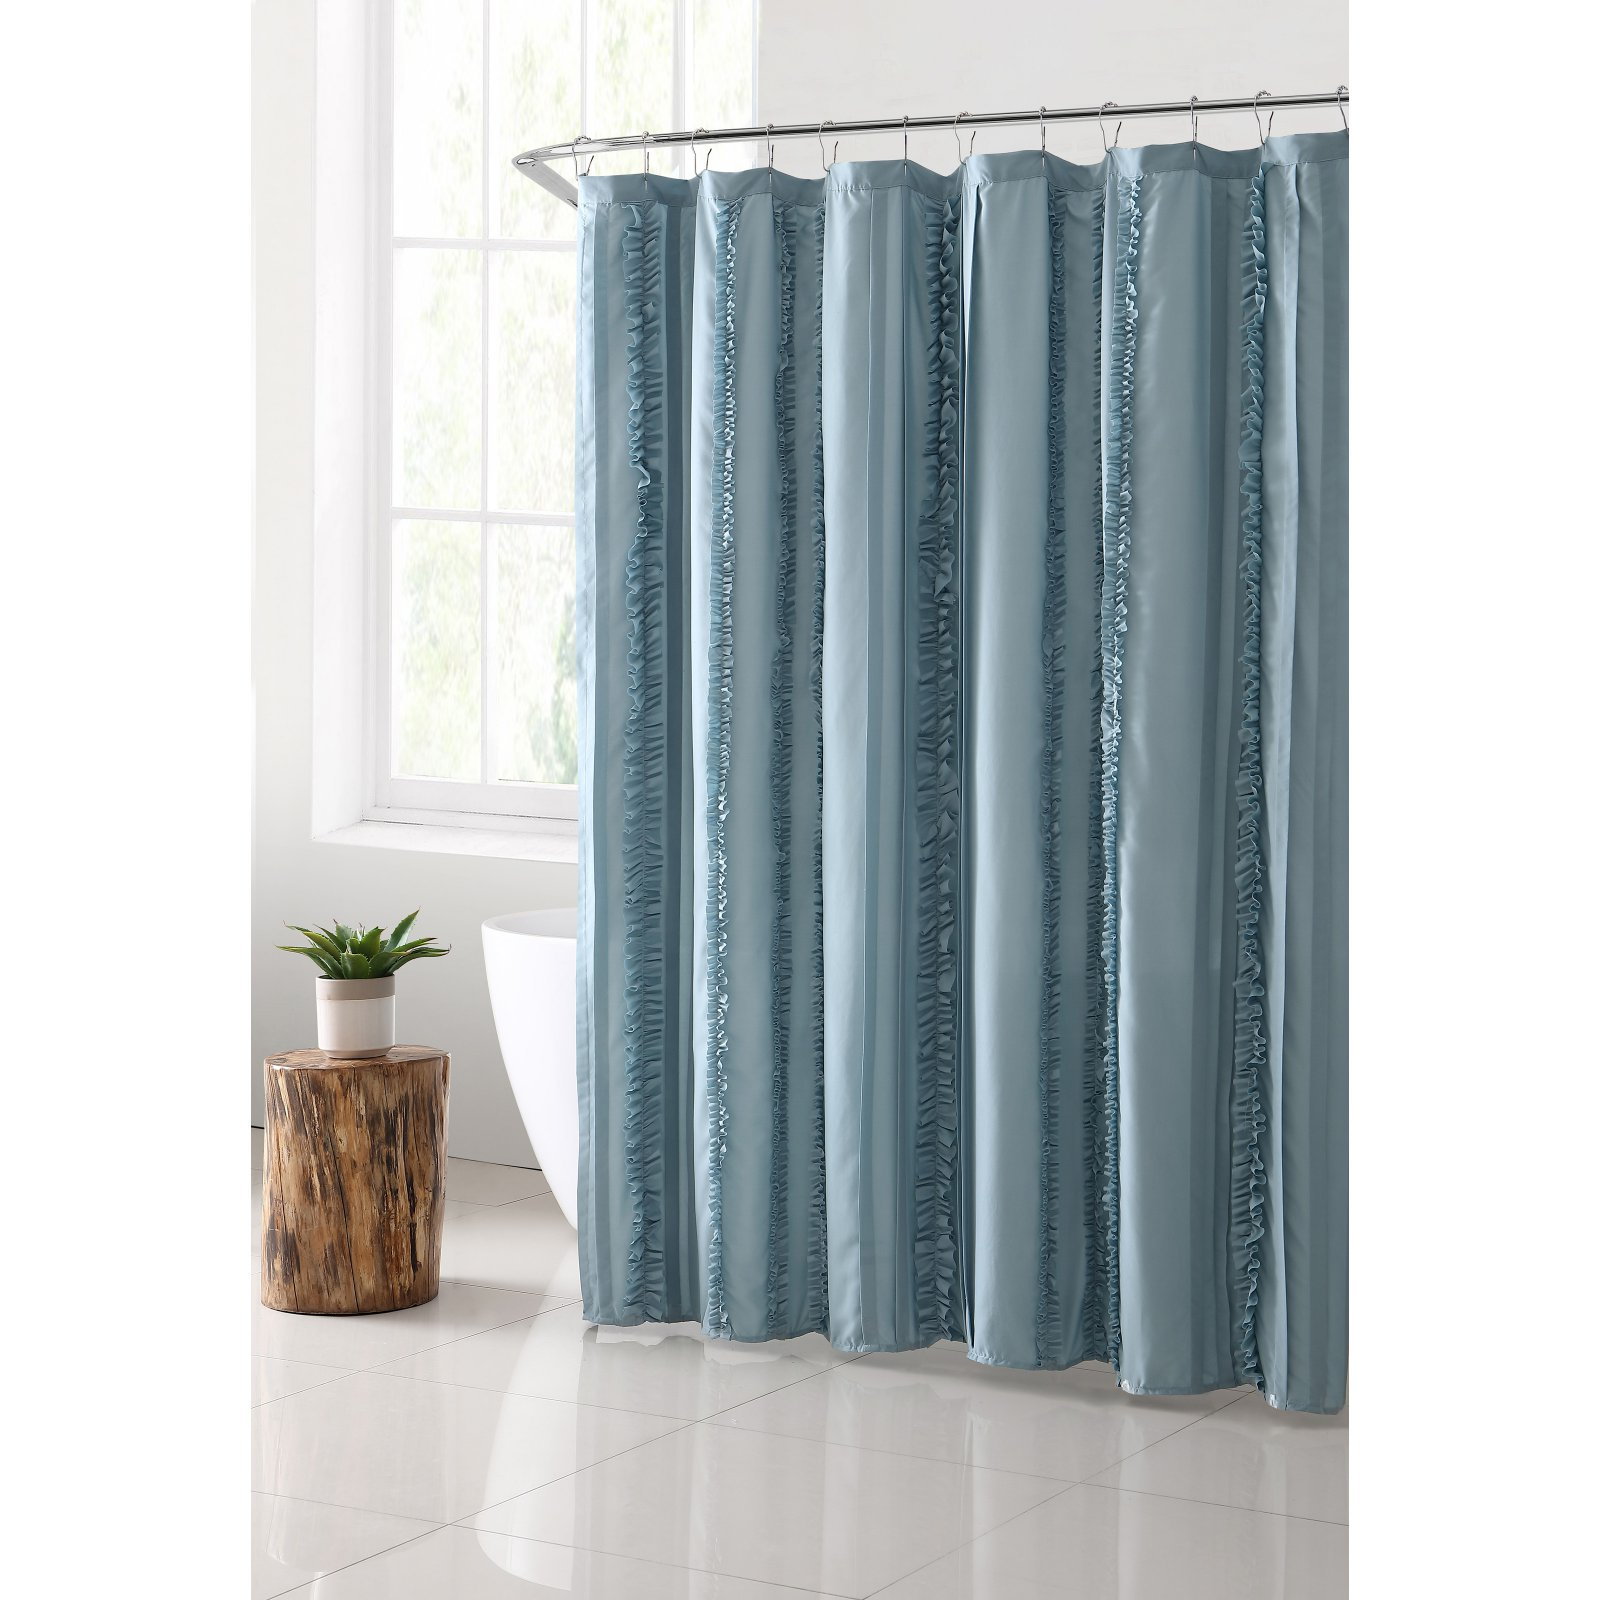 "VCNY Home Hope Solid Technique Ruffle 72"" x 72"" Shower Curtain"